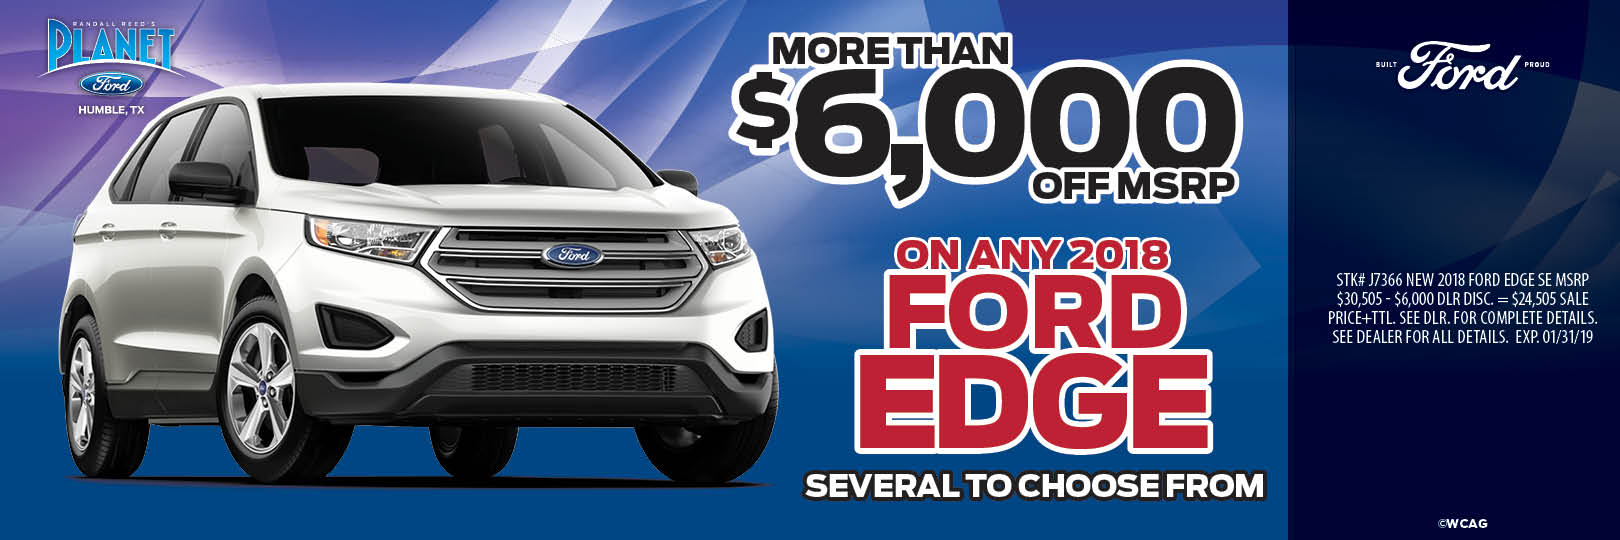 More Than $6,000 Off MSRP On Any 2018 Ford Edge